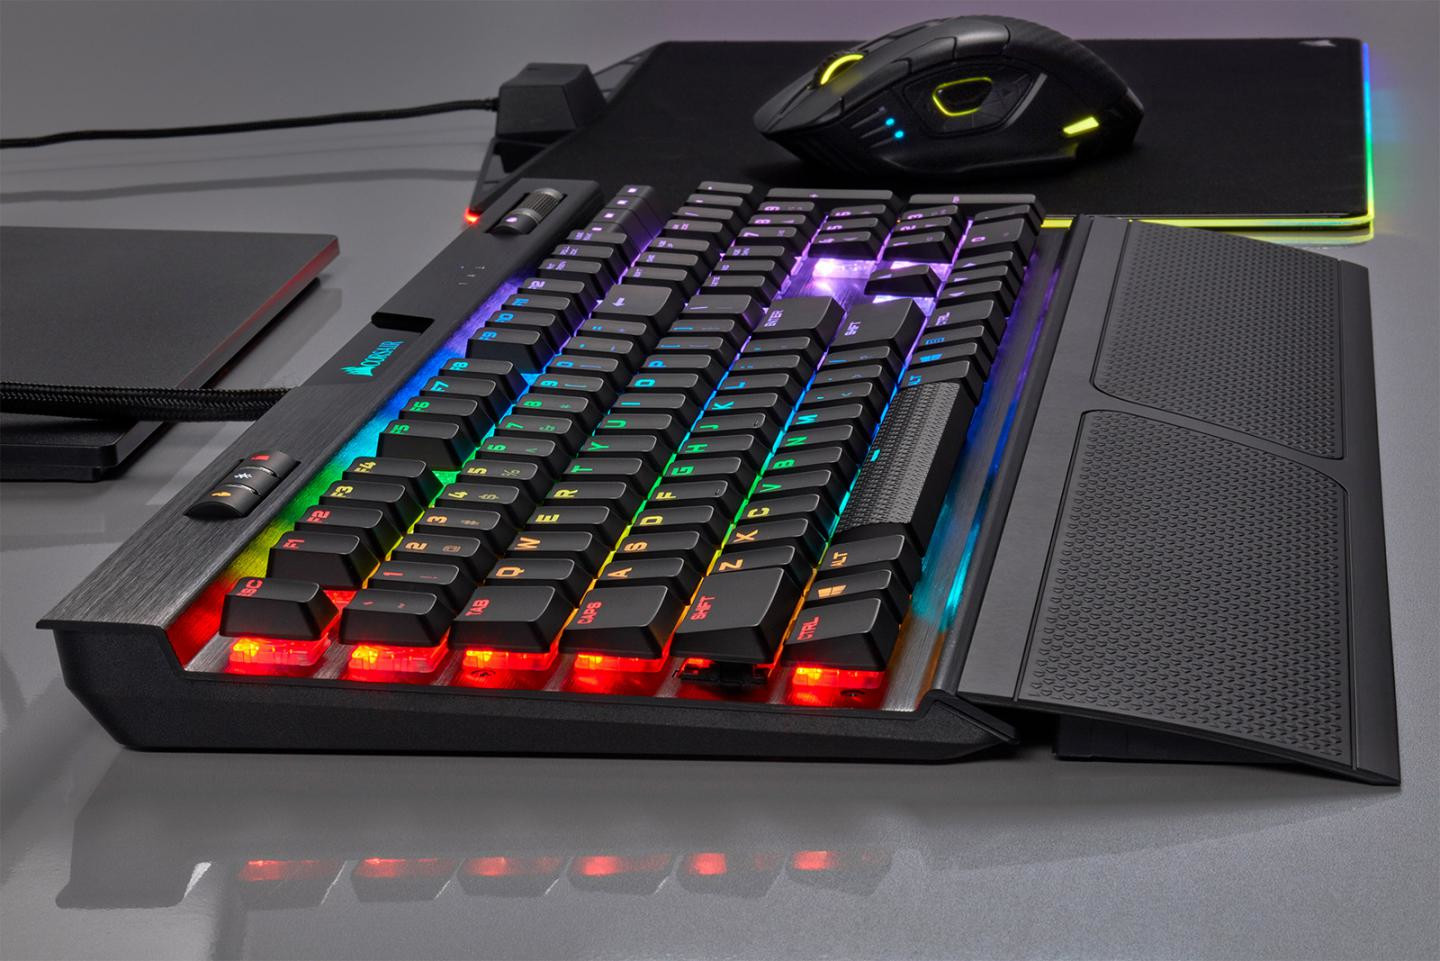 Corsair Announces its New K70 RGB MK 2 LOW PROFILE Keyboards